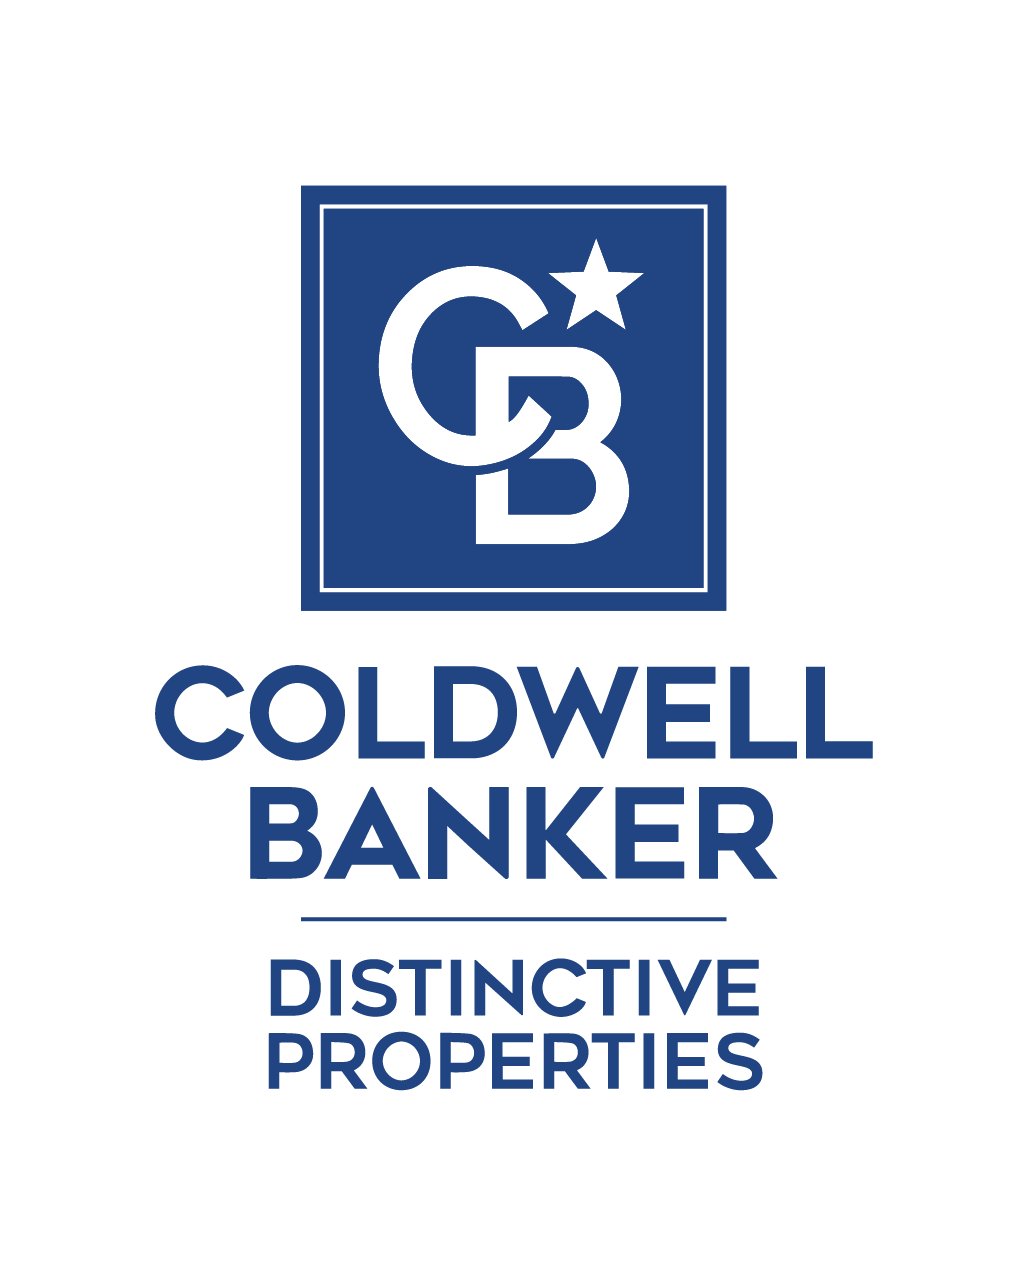 Robert Yazbeck - Coldwell Banker Distinctive Properties